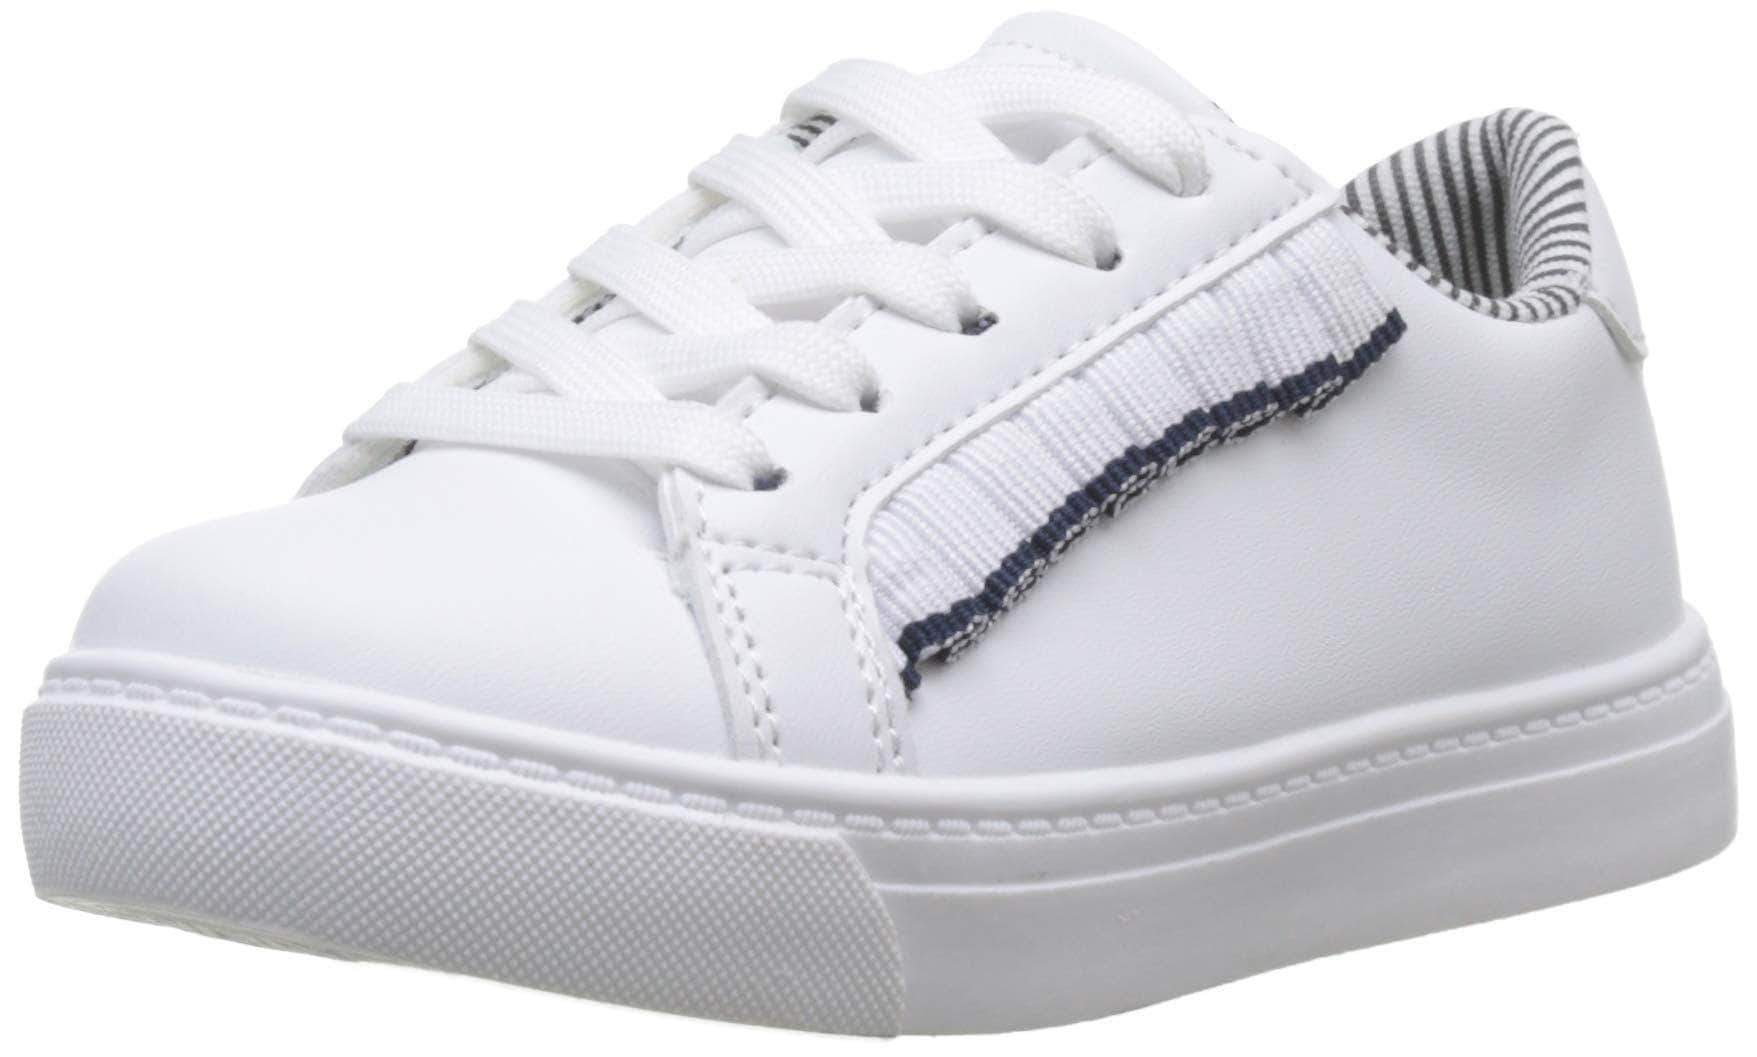 Amazon Zippy Zapatillas Frills, Niñas, Blanco (White 1178), 32 EU